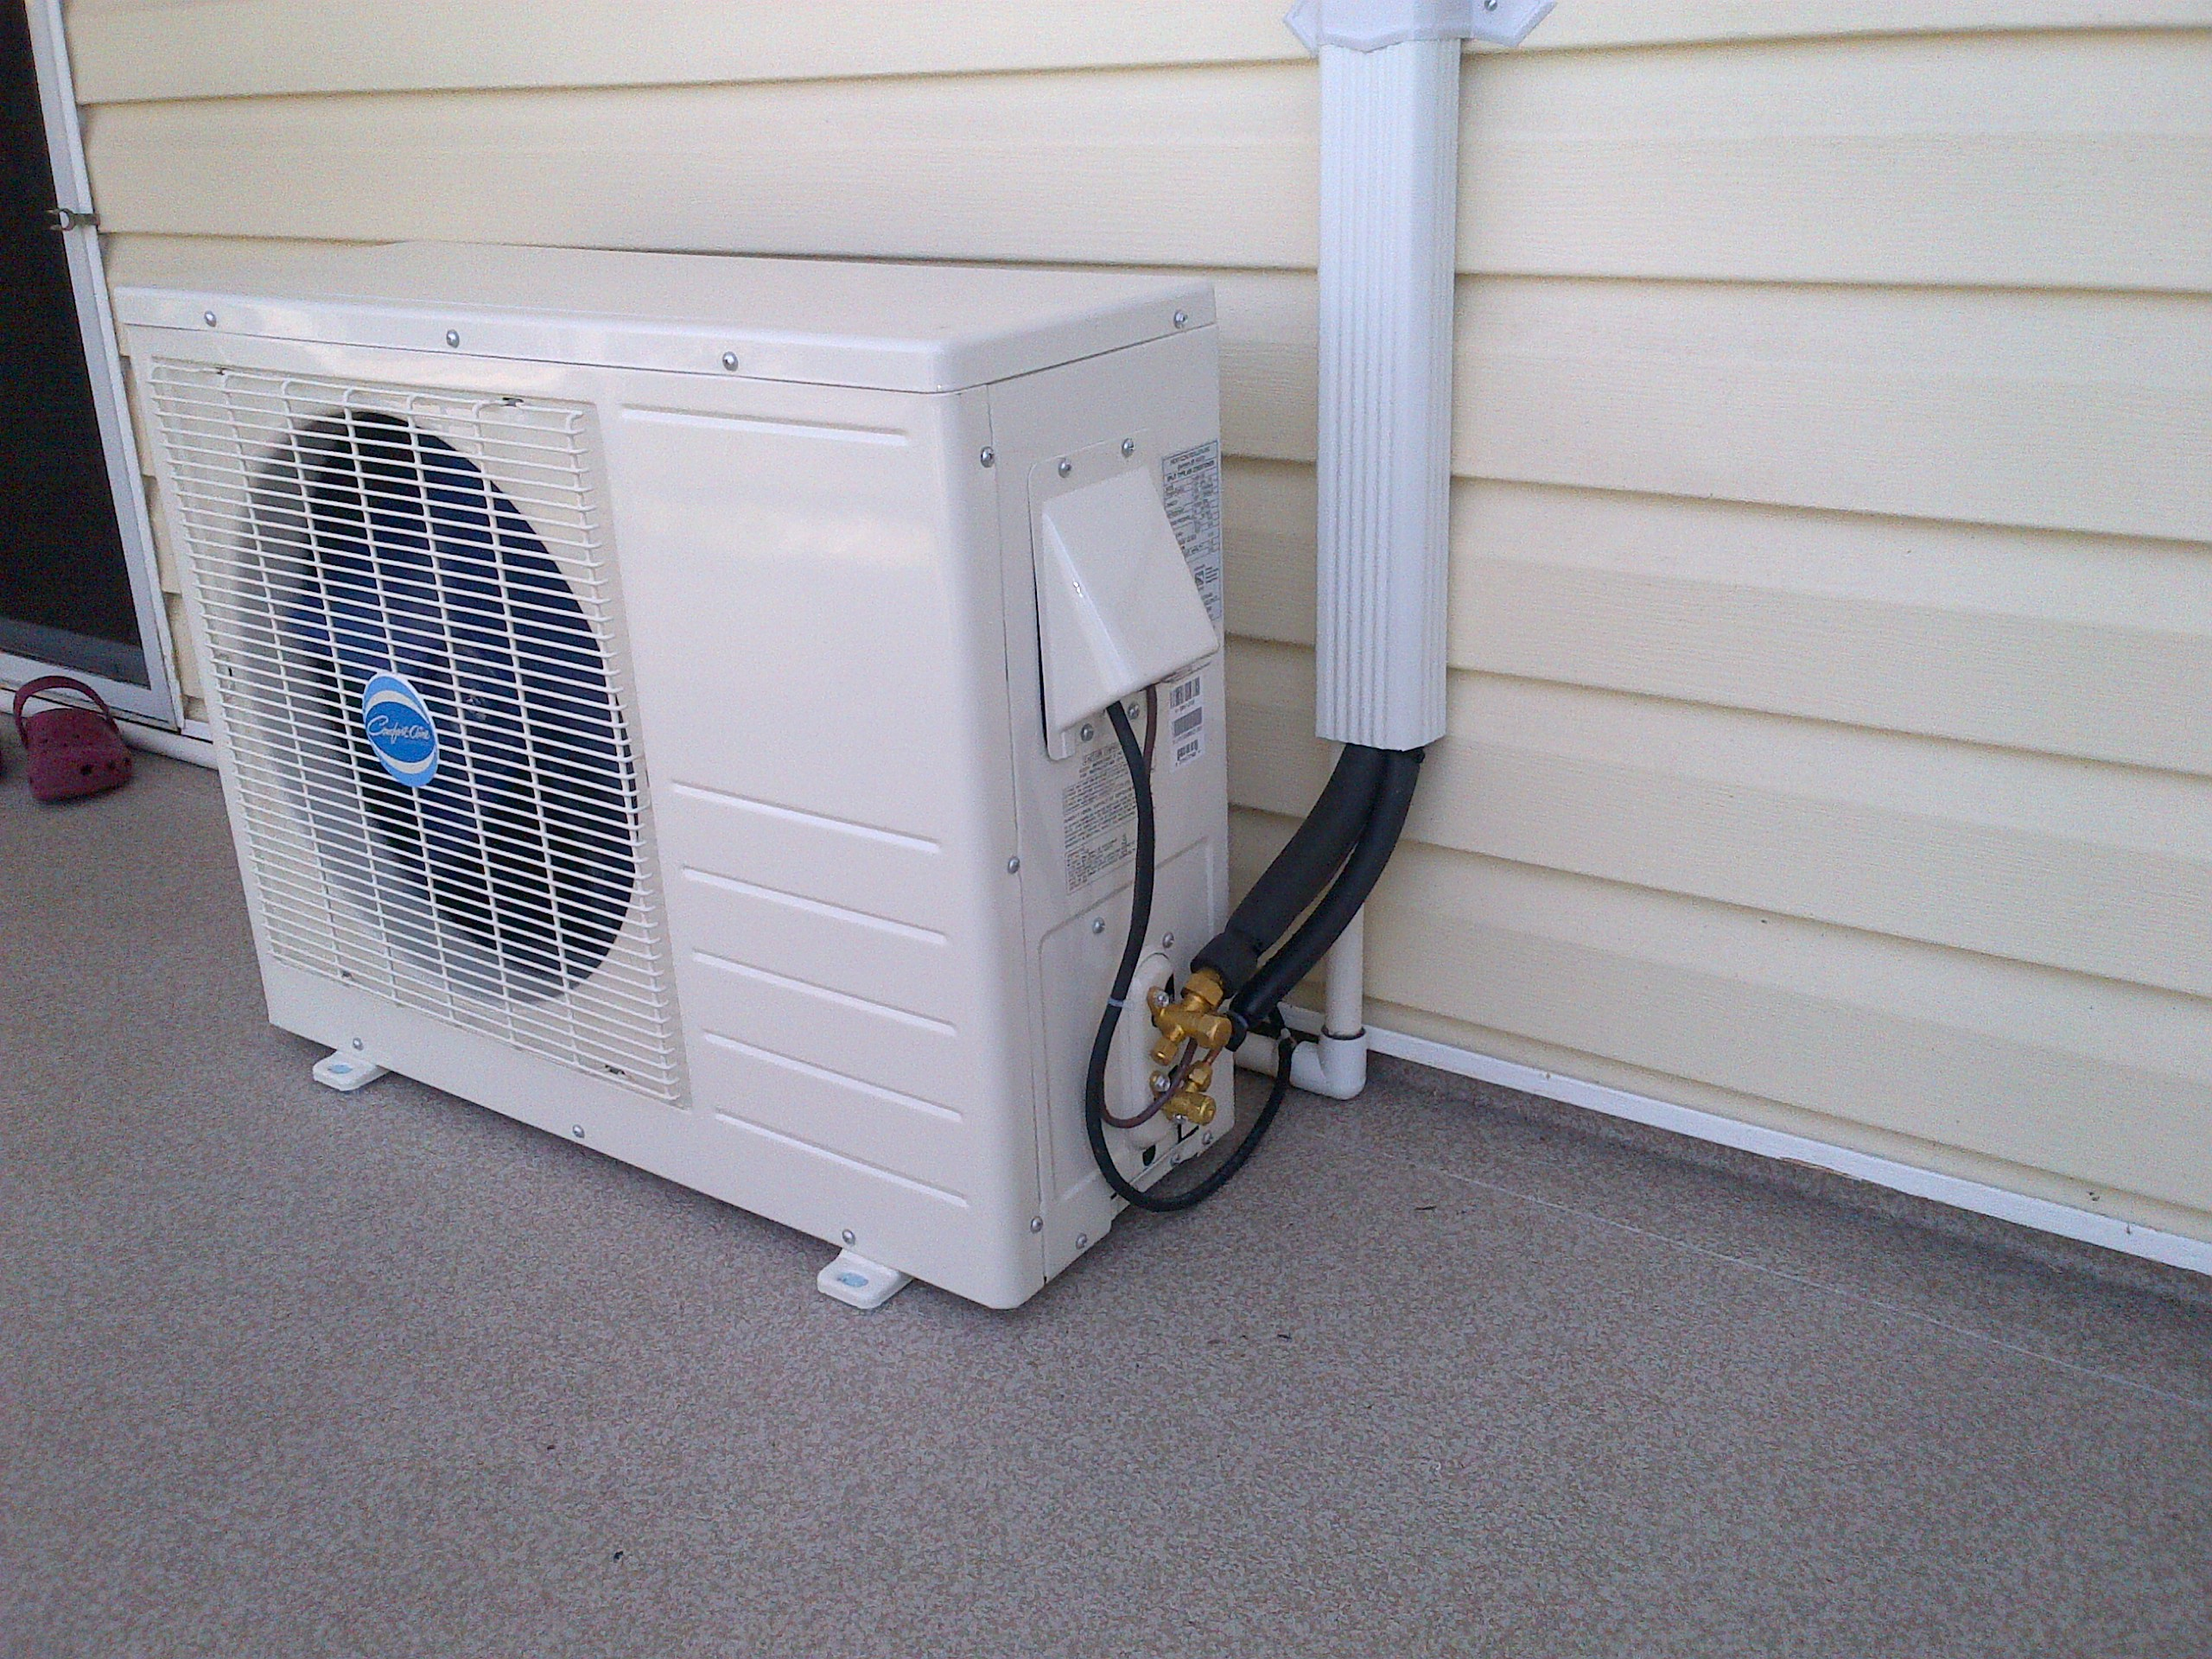 #586174 Installation Gallery Recommended 7747 Air Conditioner Installation Edenvale pics with 2560x1920 px on helpvideos.info - Air Conditioners, Air Coolers and more